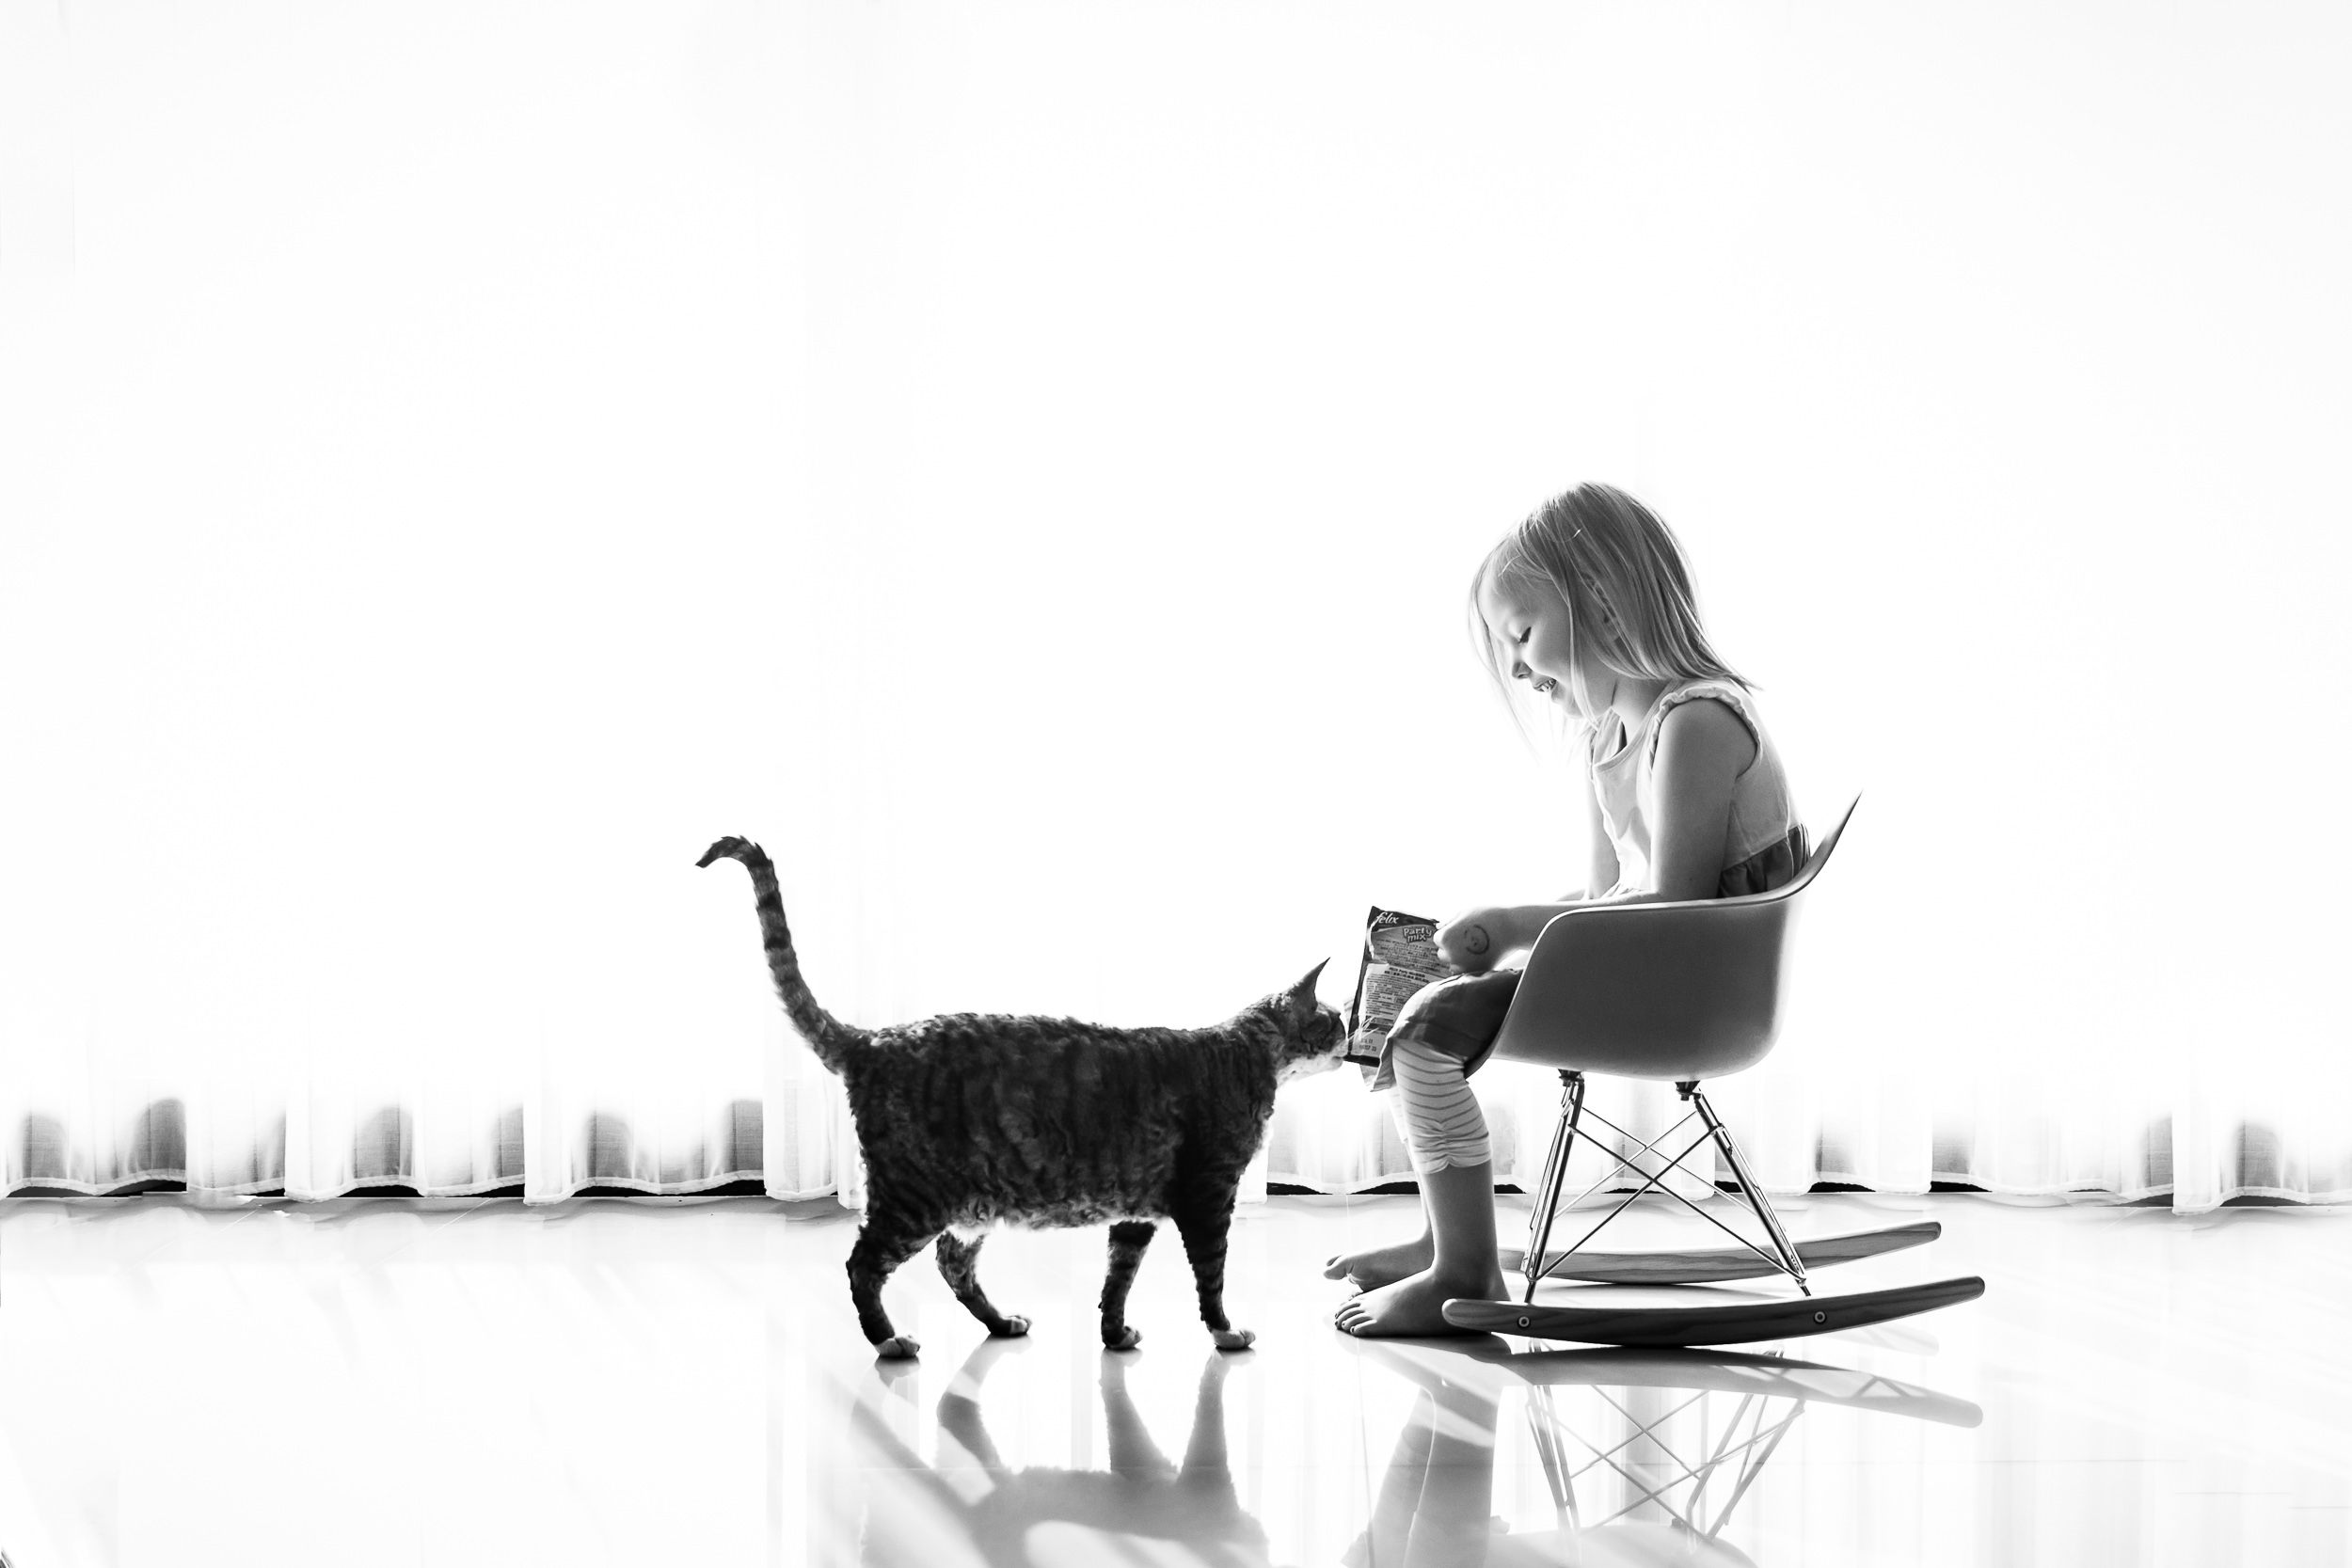 backlit_image_of_girl_feeding_cat_in_Personal_portfolio_by_rebecca_hunnicutt_farren.jpg